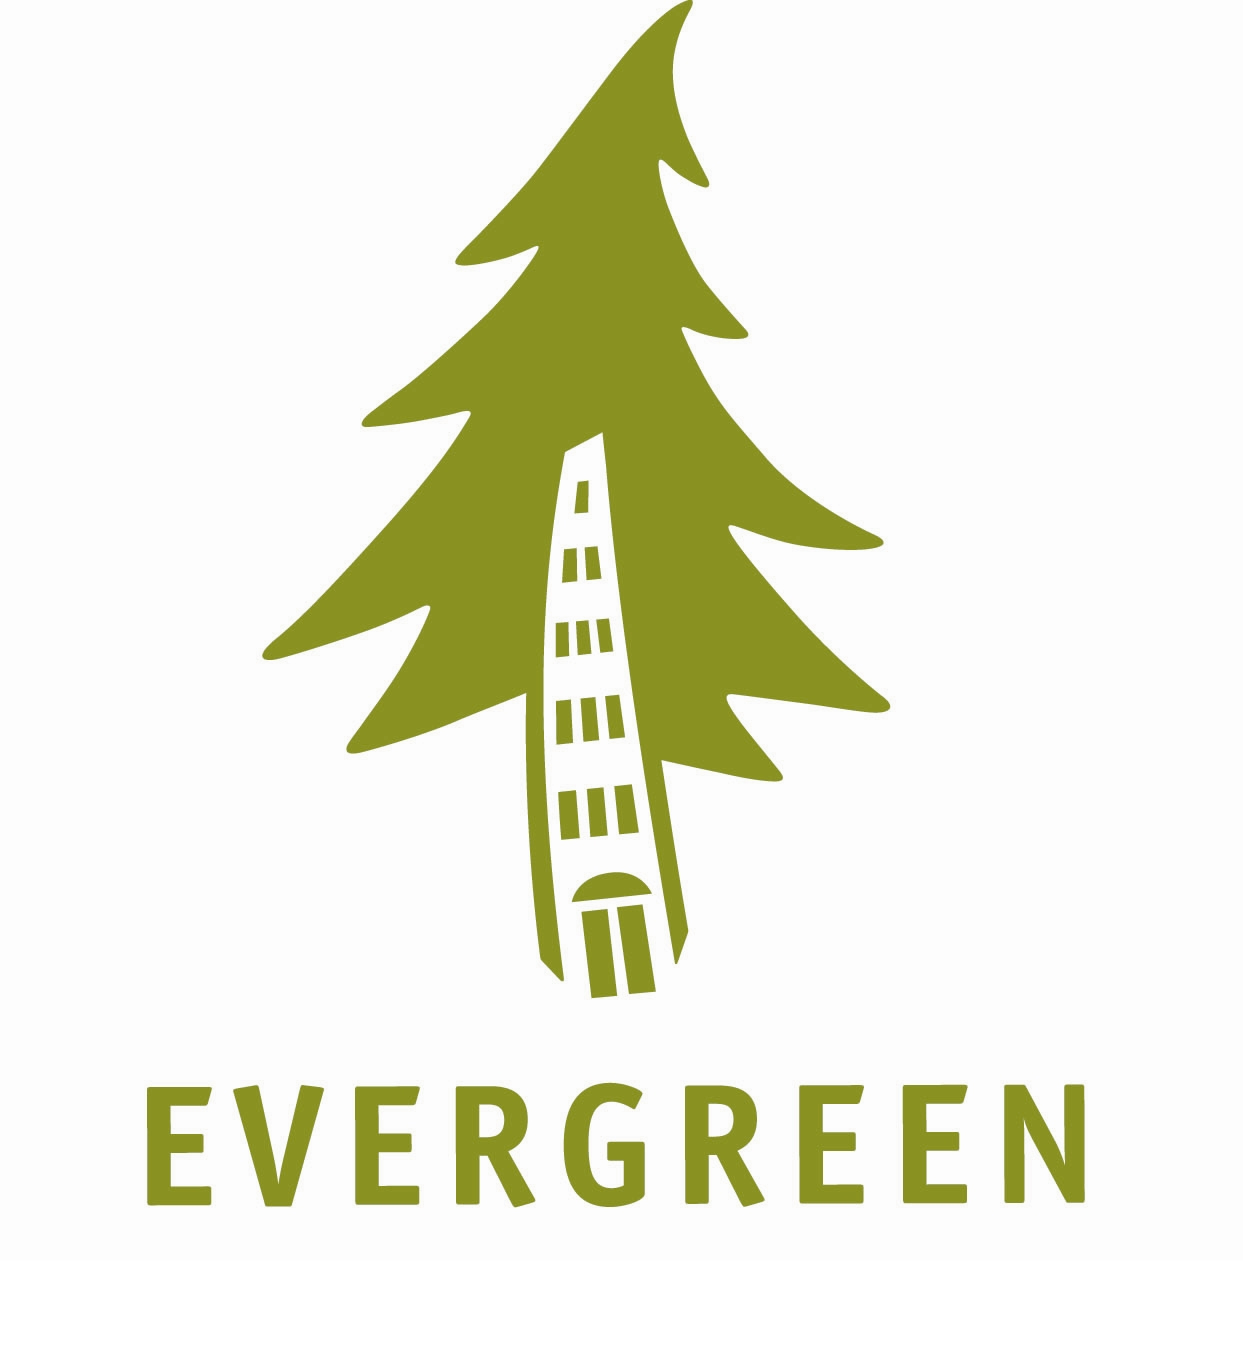 Evergreen_logo.jpg